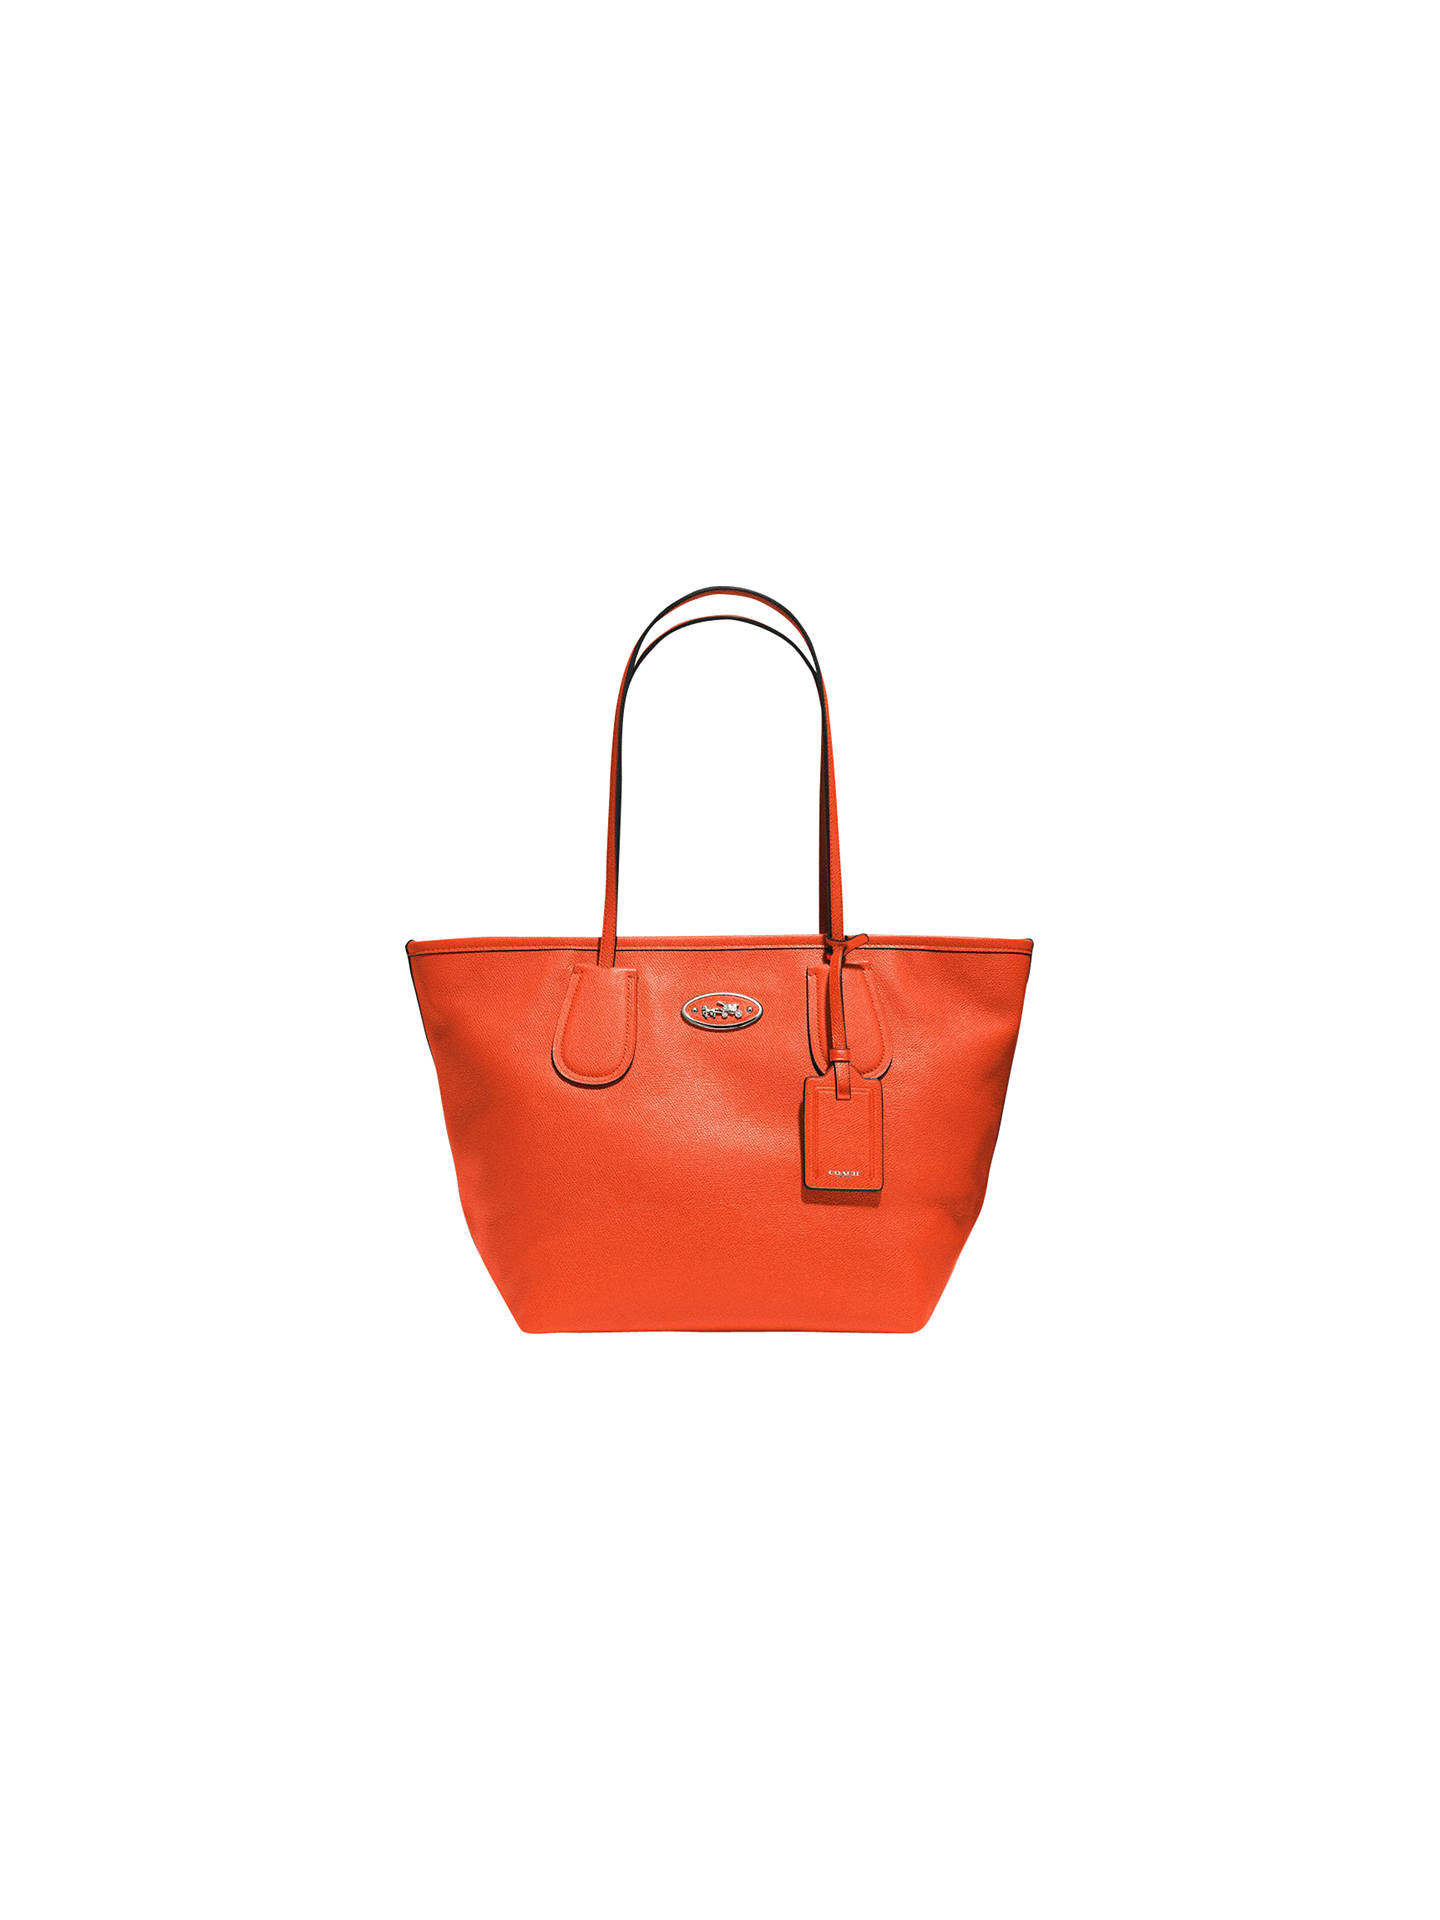 sale coach signature coh taxi zip tote f34104 brown black 3cc45 ce009   coupon code for buycoach taxi zip leather tote bag coral online at  johnlewis 0e938 ... fe83e347e5820